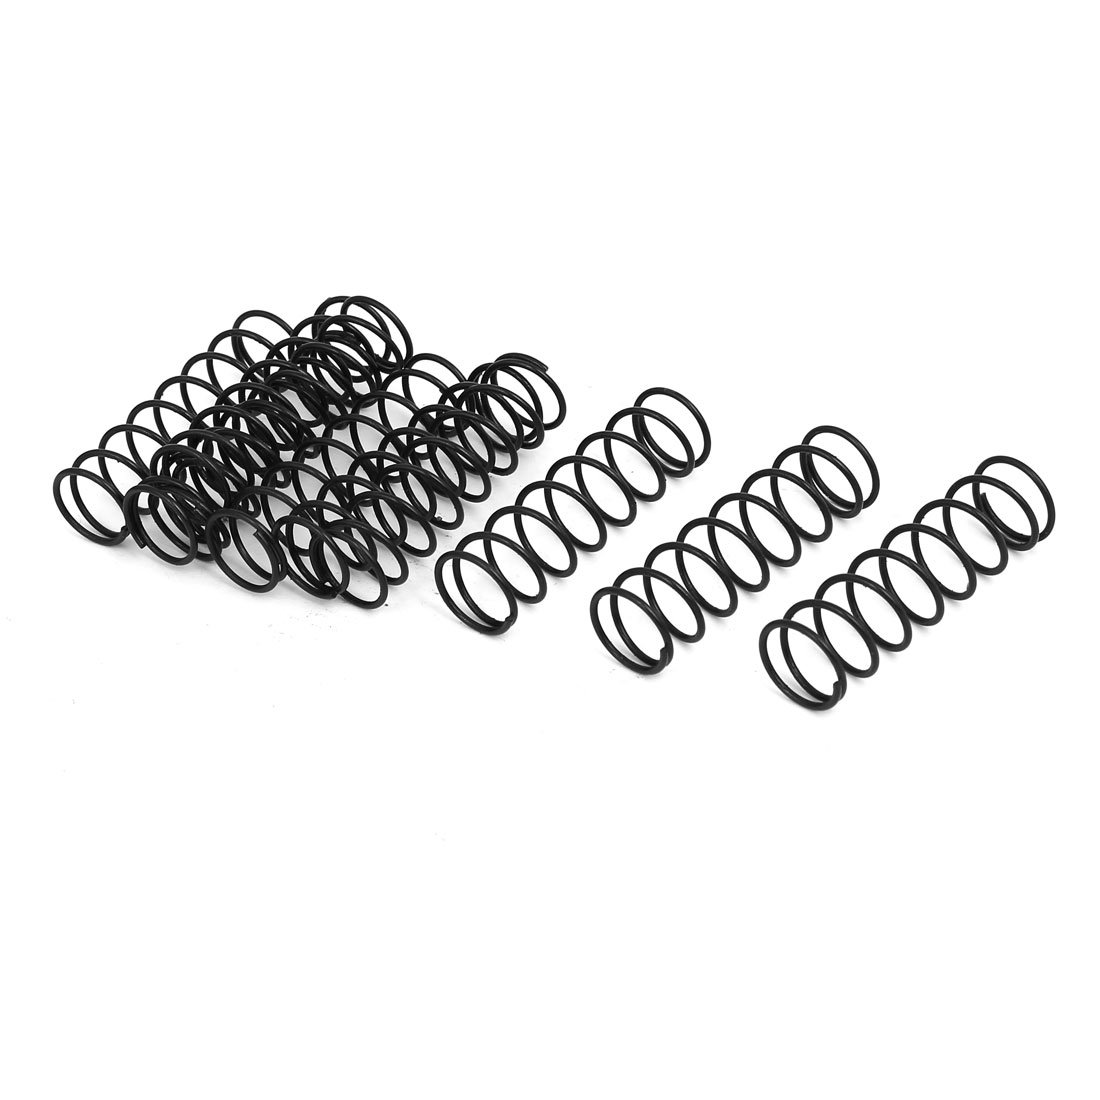 sourcingmap 15mm Outer Diameter 1.2mm Wire Dia 50mm Long Compression Spring 10Pcs a17020800ux1378